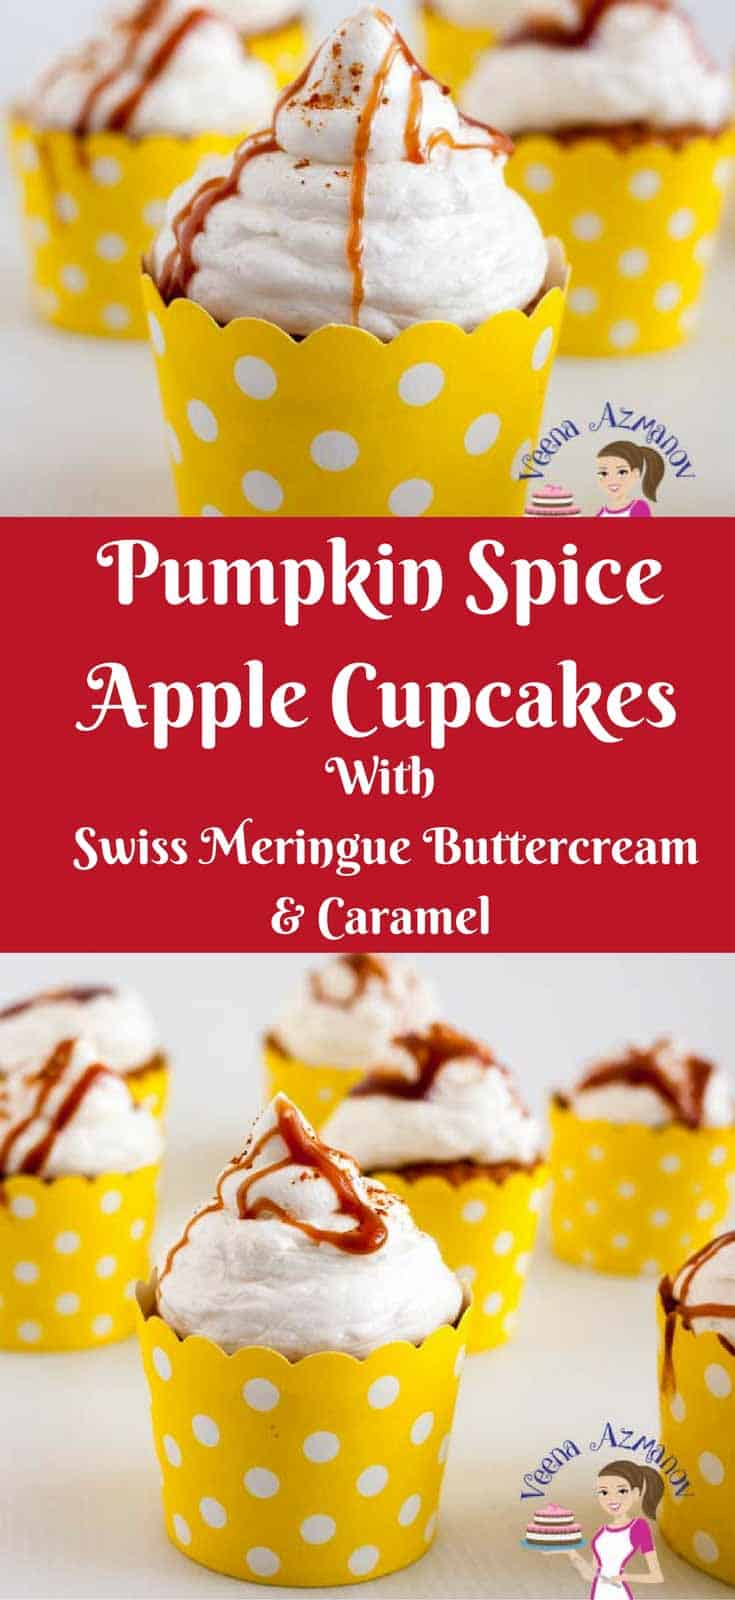 Perfect for the season these pumpkin spiced apple cupcakes with the warm pumpkin spice, velvet buttercream that melts in your mouth and ends with the sweetness of the caramel. #pumpkin #spice #cupcakes #apple #baking